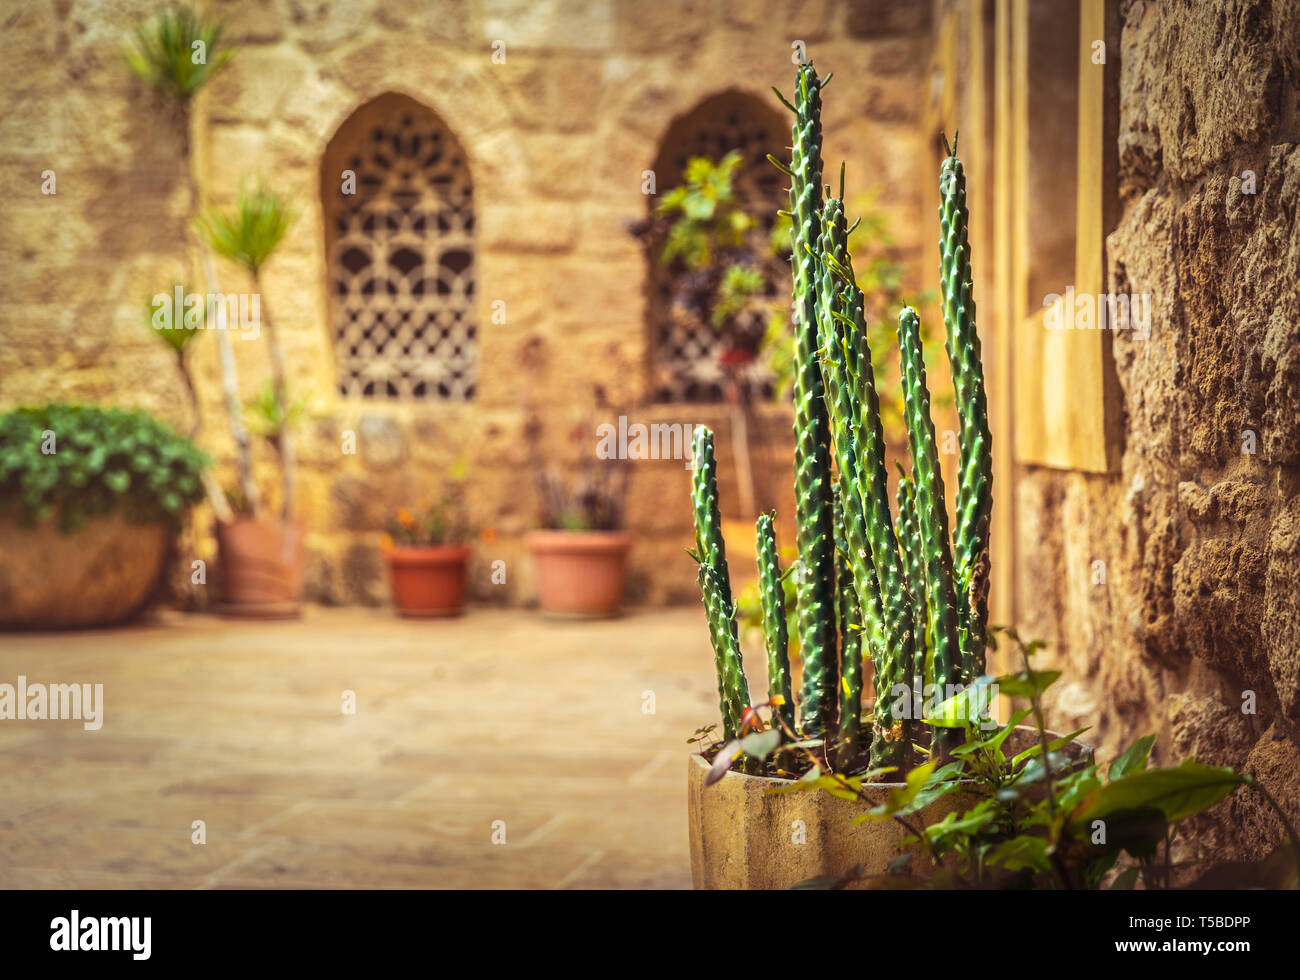 Beautiful yard of a church with fresh cactus in pot, old christian monastery, tourist attraction, Lebanon ancient architecture - Stock Image